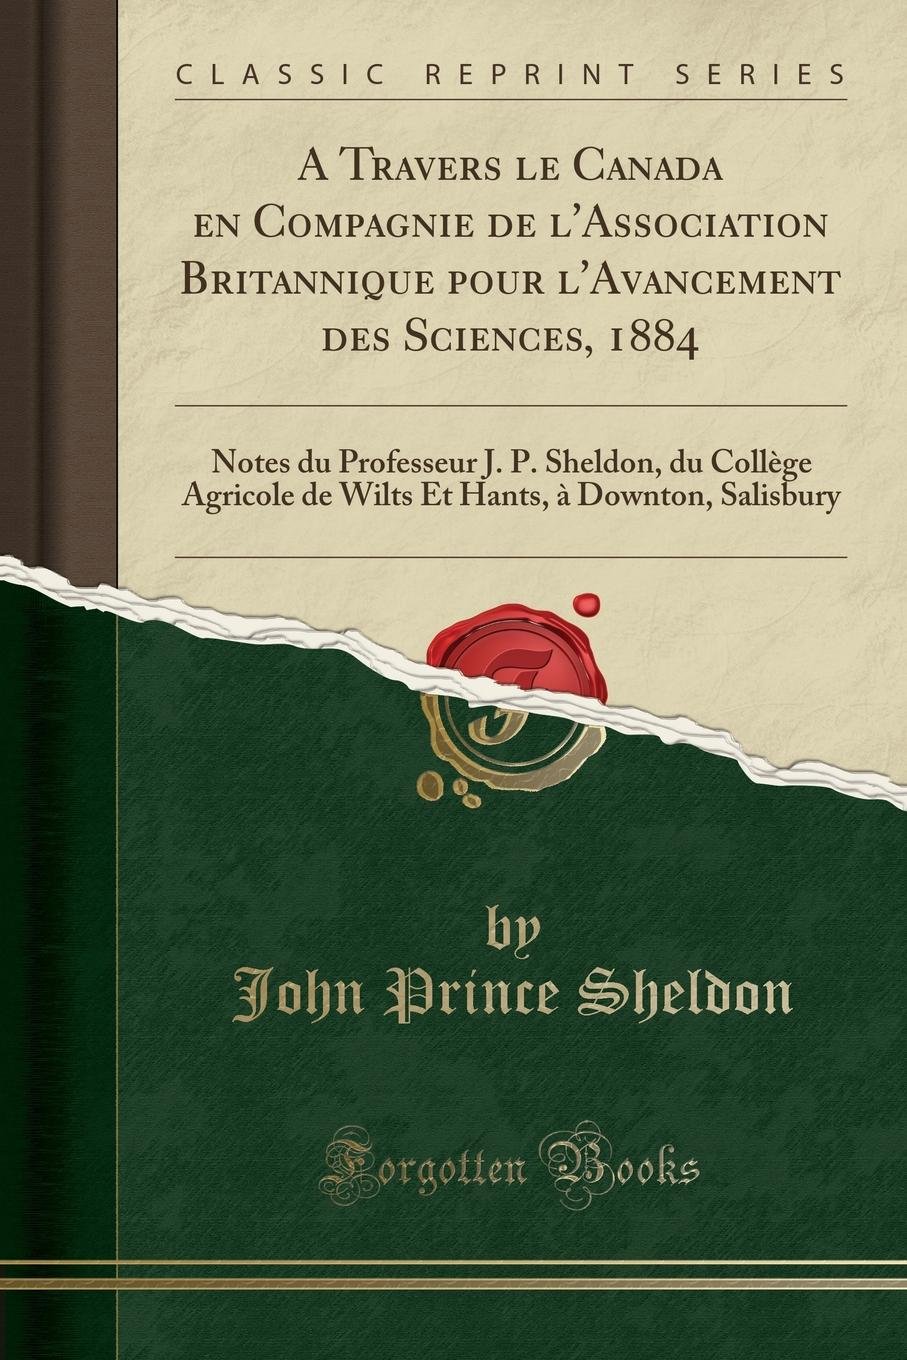 A Travers le Canada en Compagnie de l.Association Britannique pour l.Avancement des Sciences, 1884. Notes du Professeur J. P. Sheldon, du College Agricole de Wilts Et Hants, a Downton, Salisbury (Classic Reprint) Excerpt from A Travers le Canada en Compagnie de l'Association...